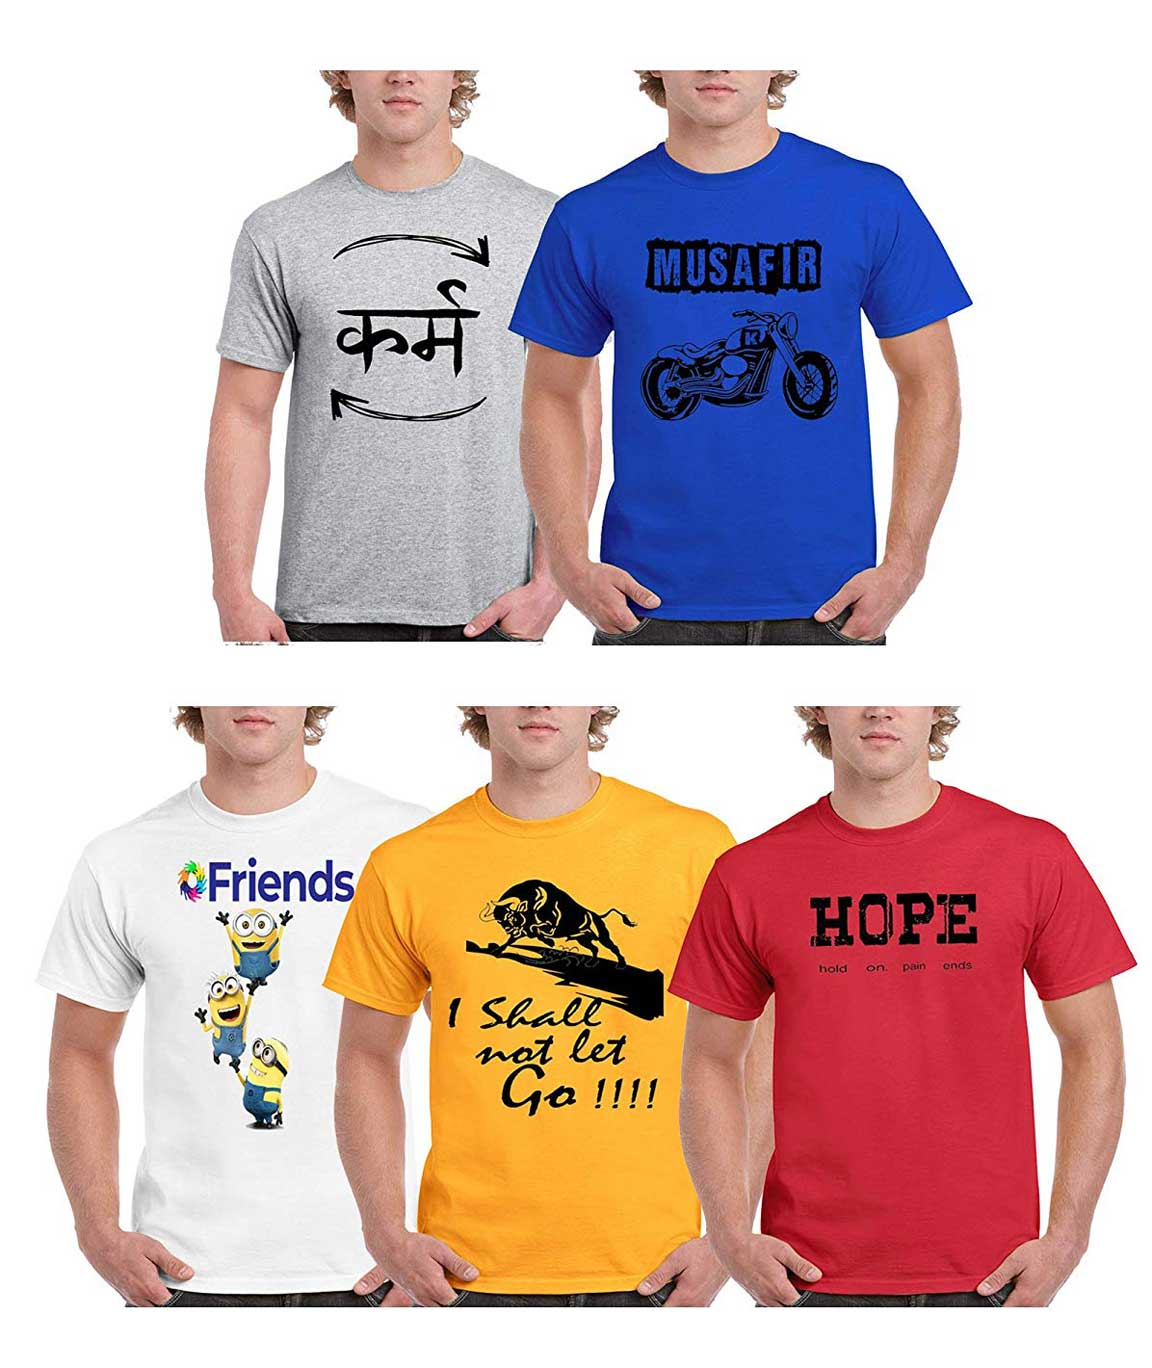 Vestiario Super Dry Fit Round Neck Printed T-Shirts Pack of 5